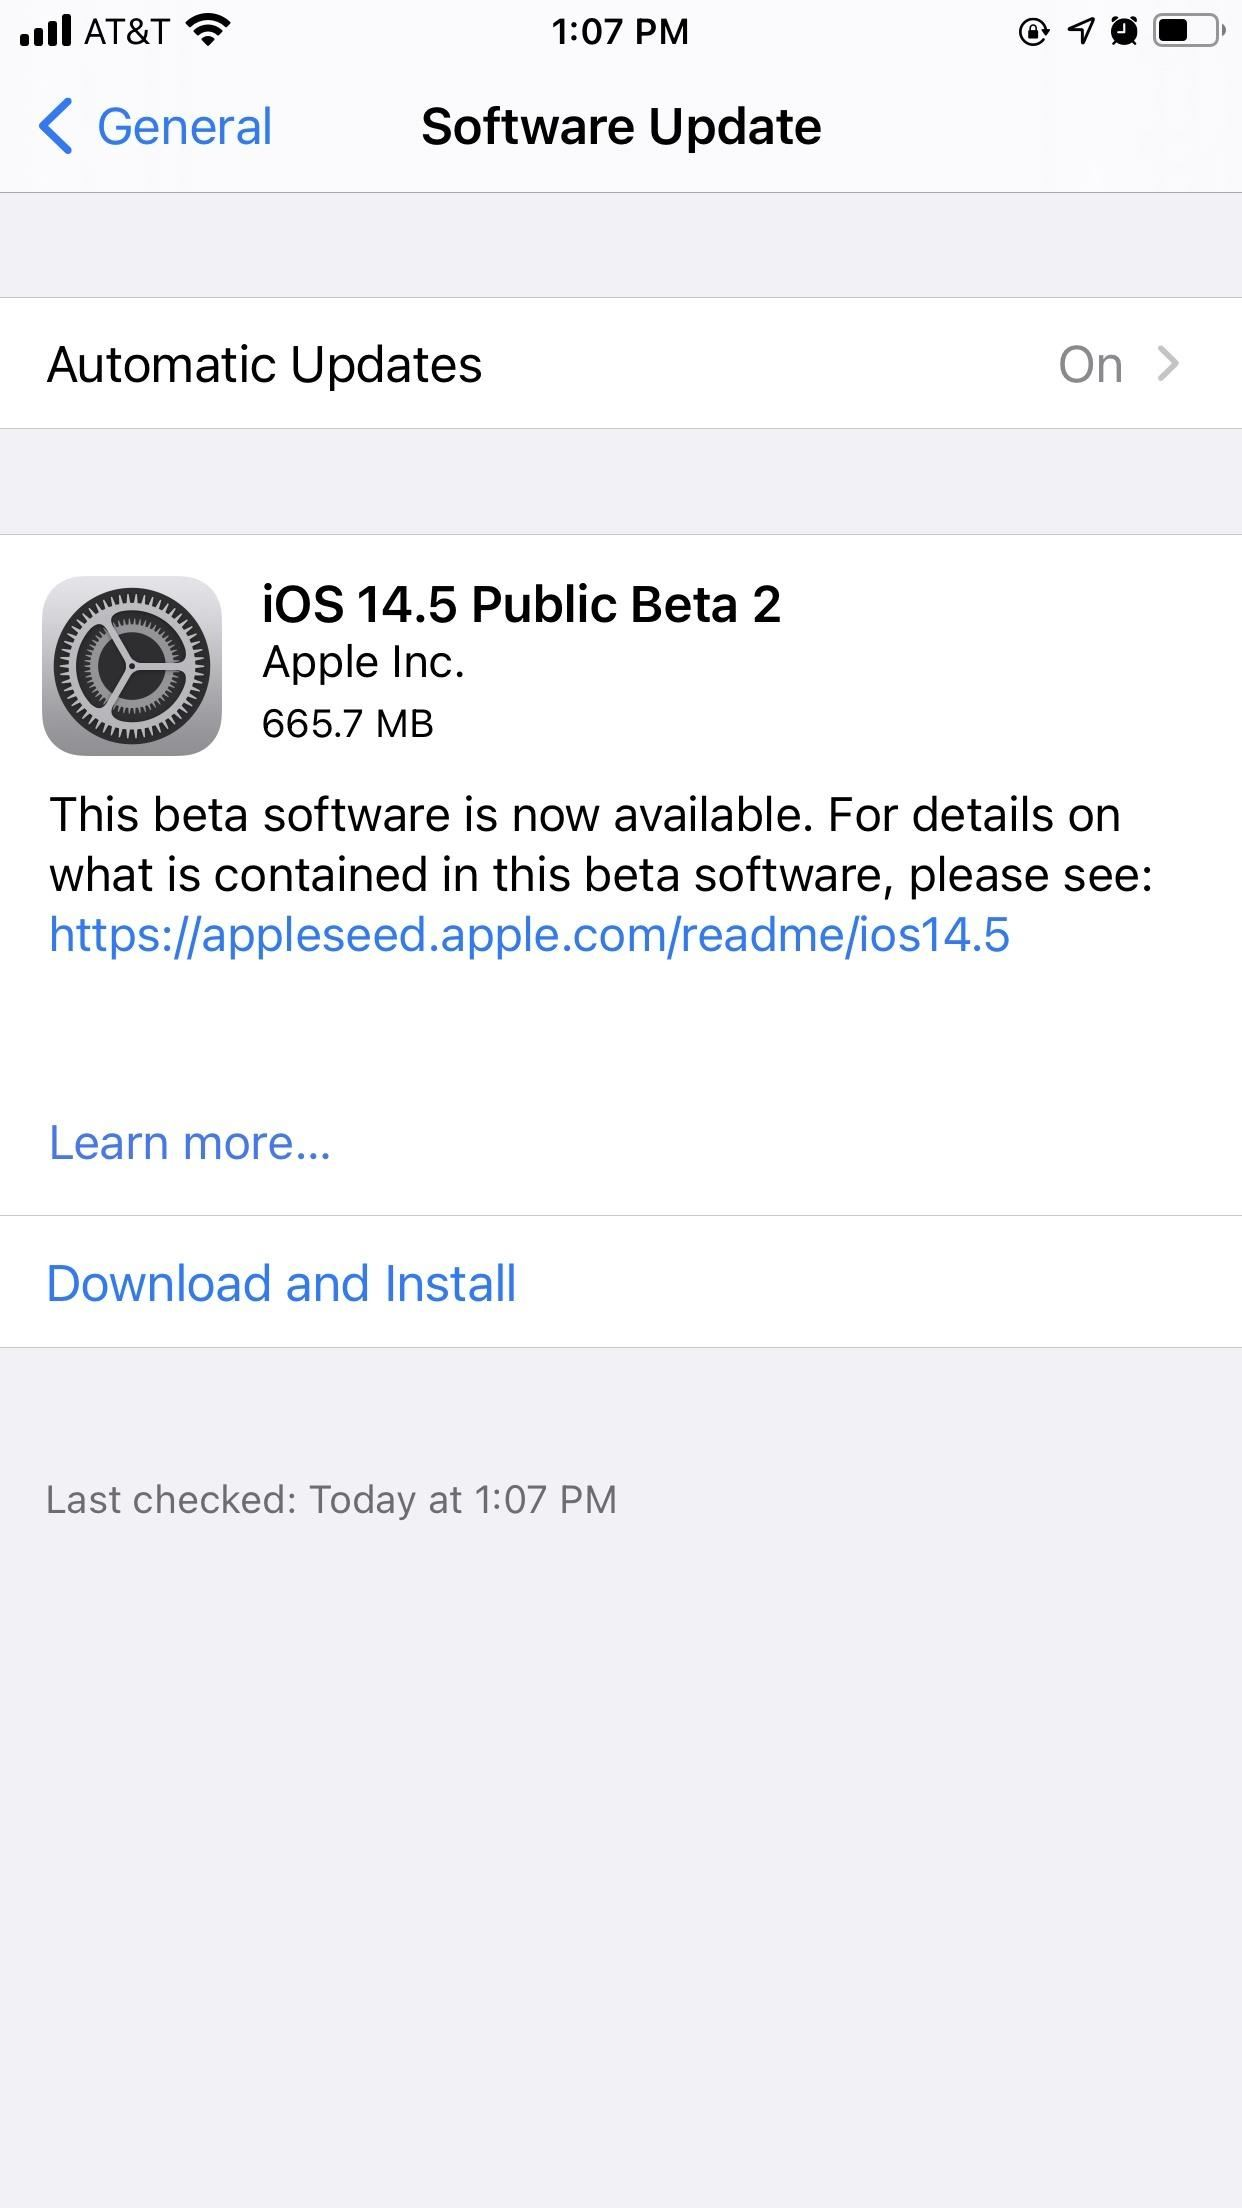 Apple Releases iOS 14.5 Public Beta 2 for iPhone, Adds Over 200 New Emoji & Apple Music Lyric Sharing